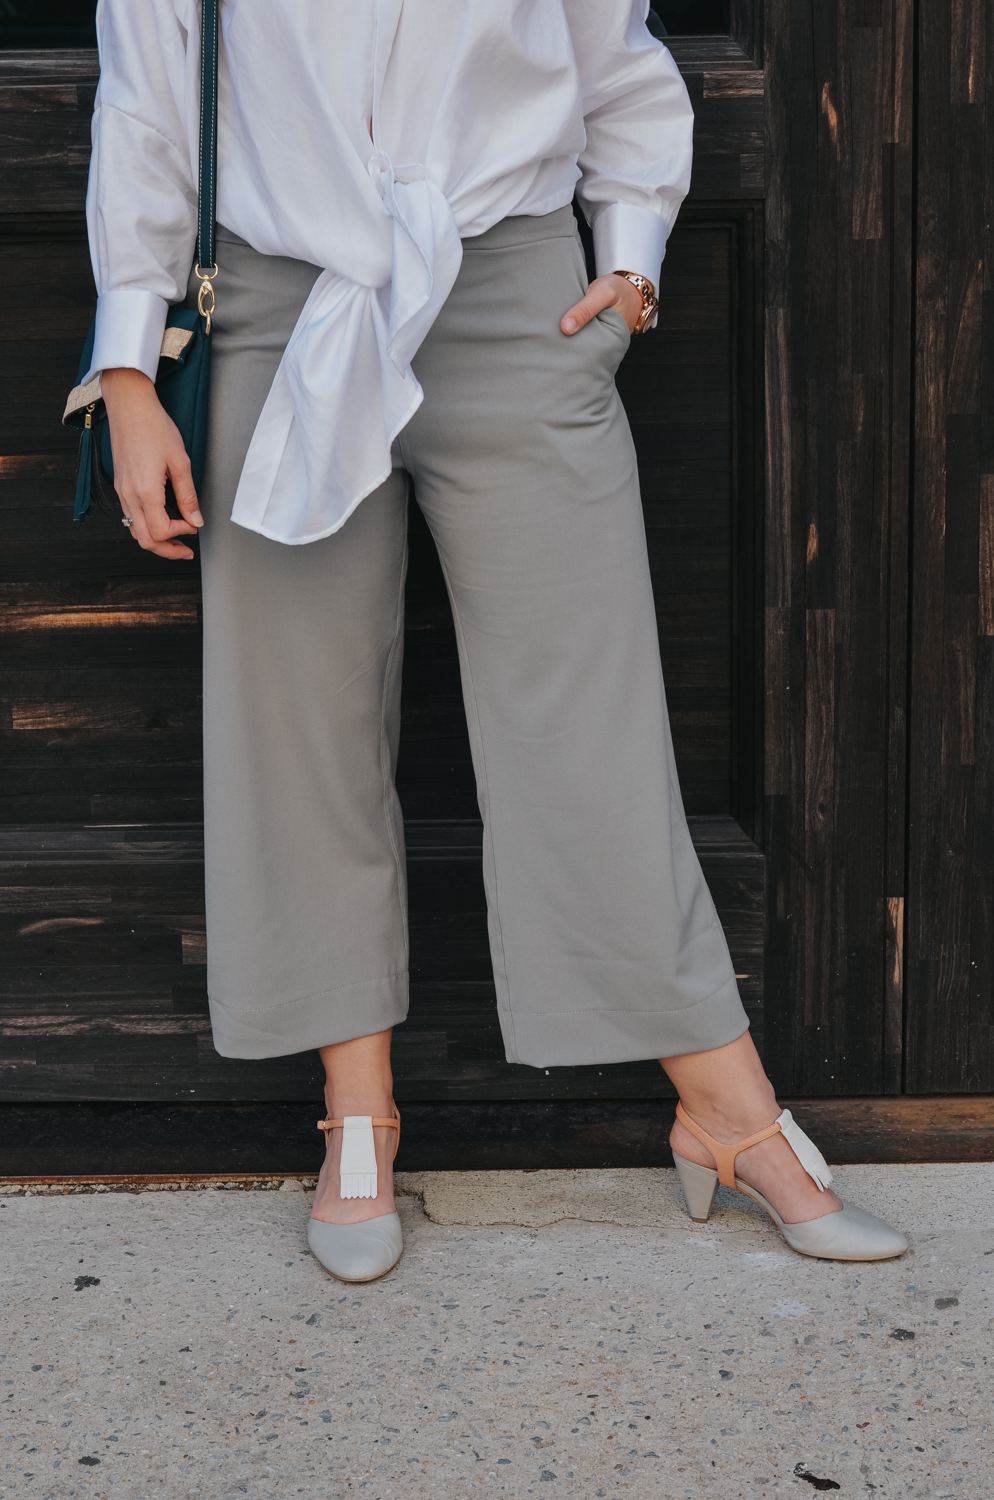 Narrow Arrow grey culottes and shirt, @alterreny shoes | fall fashion trends, wide leg pants, trending, new york fashion week, street style